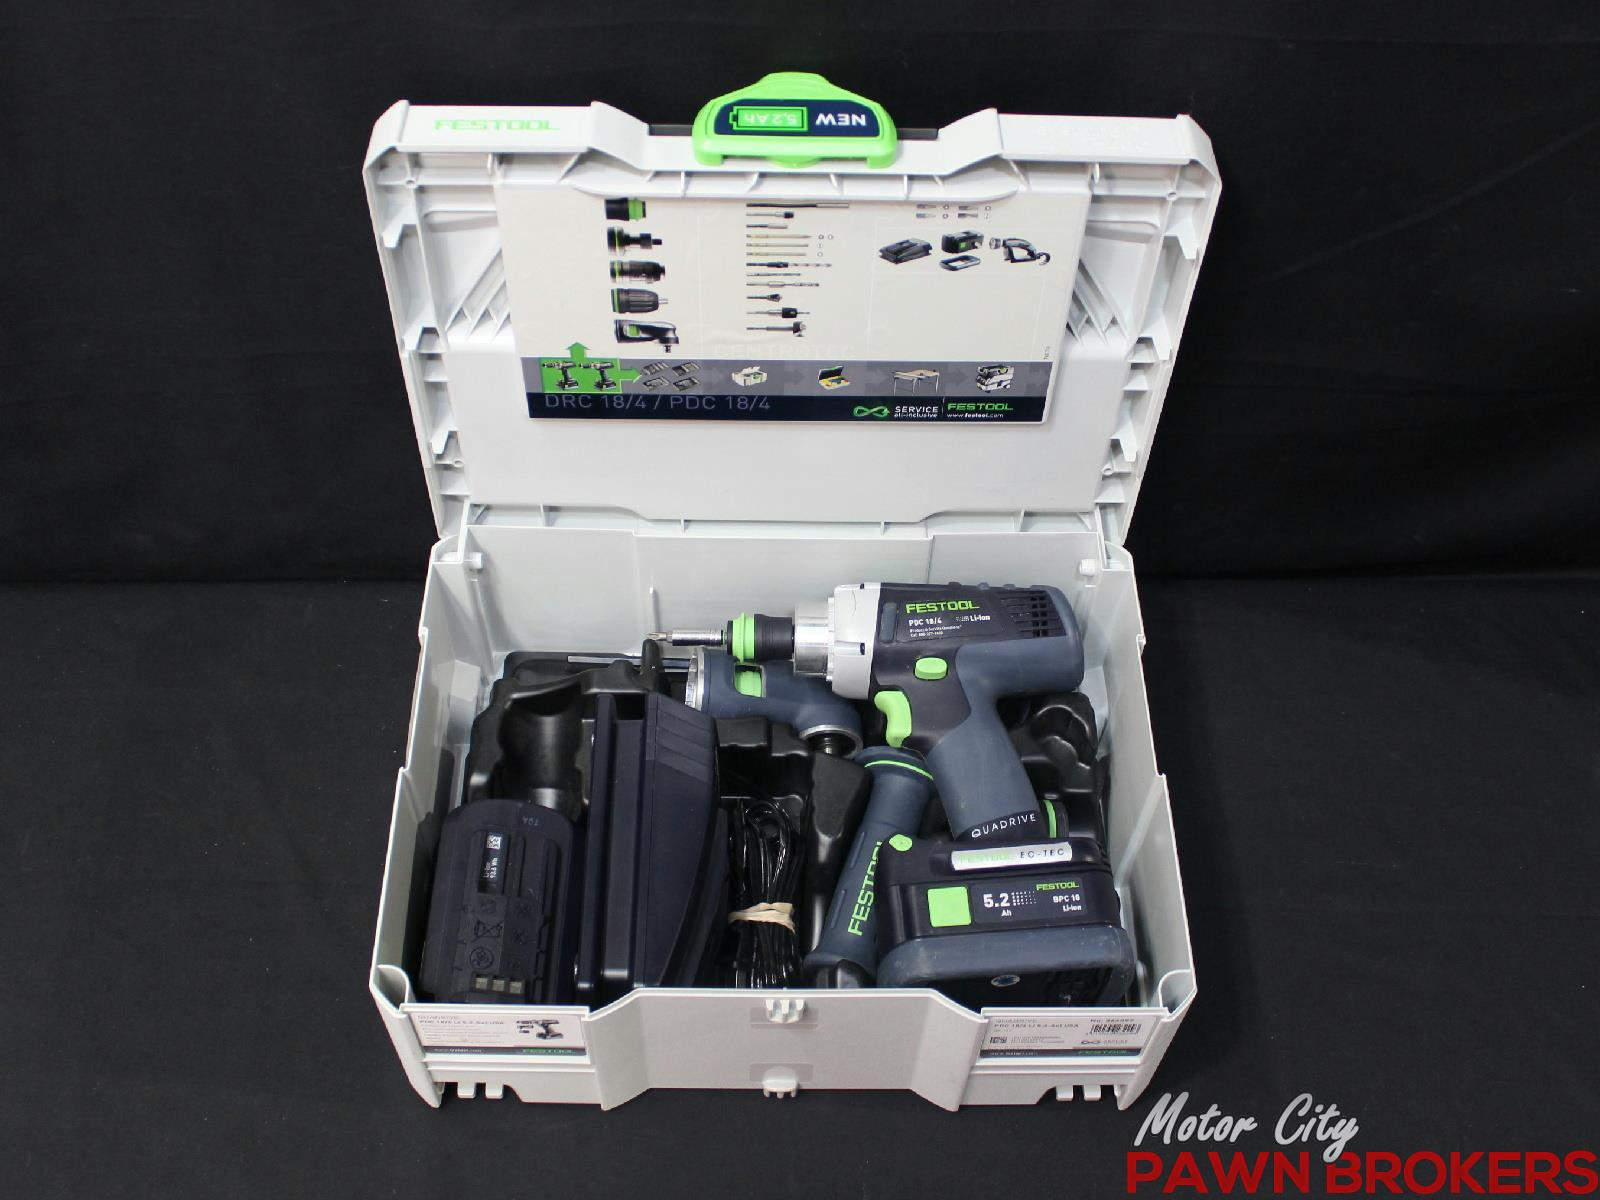 Festool No 564597 Quadrive Pdc 18 4 18v 1 2